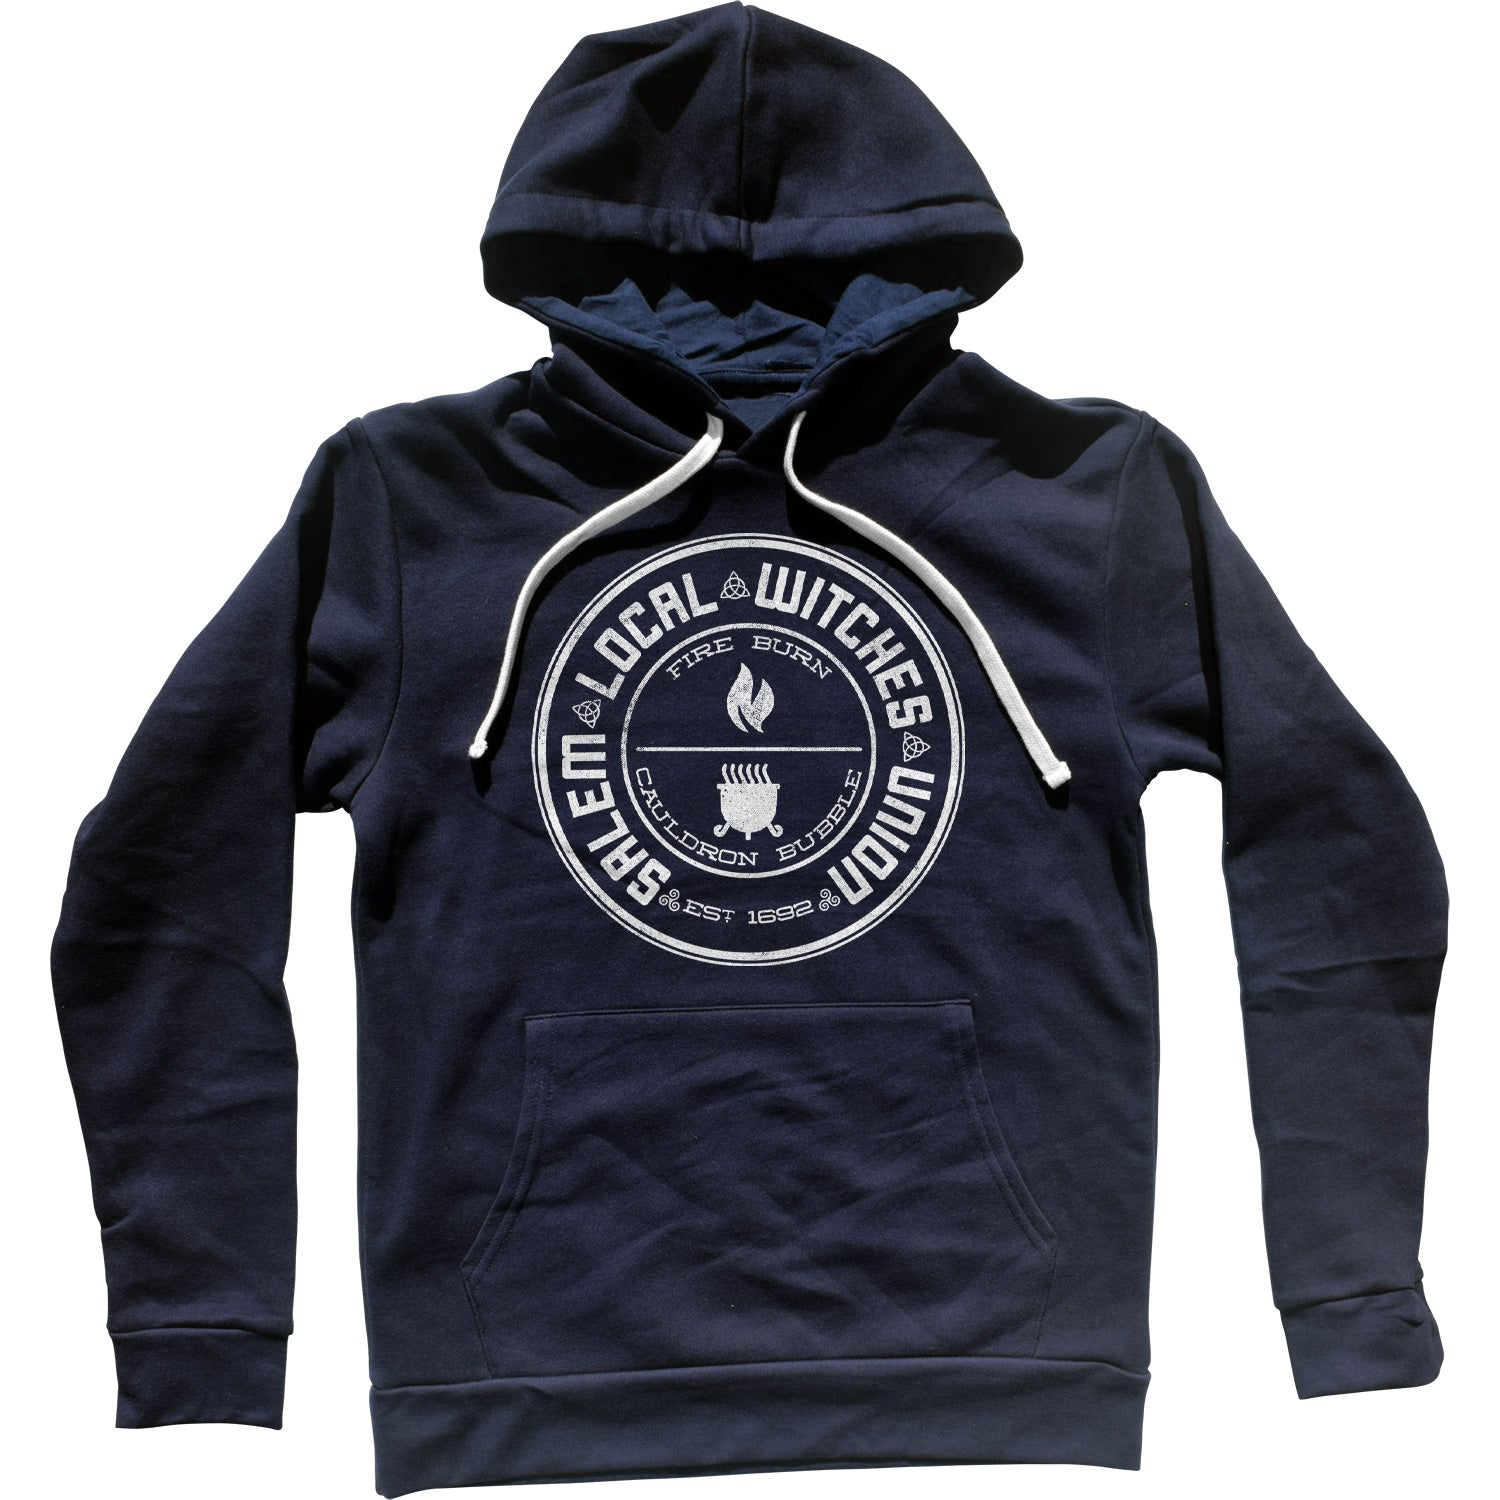 Salem Local Witches Union Unisex Hoodie